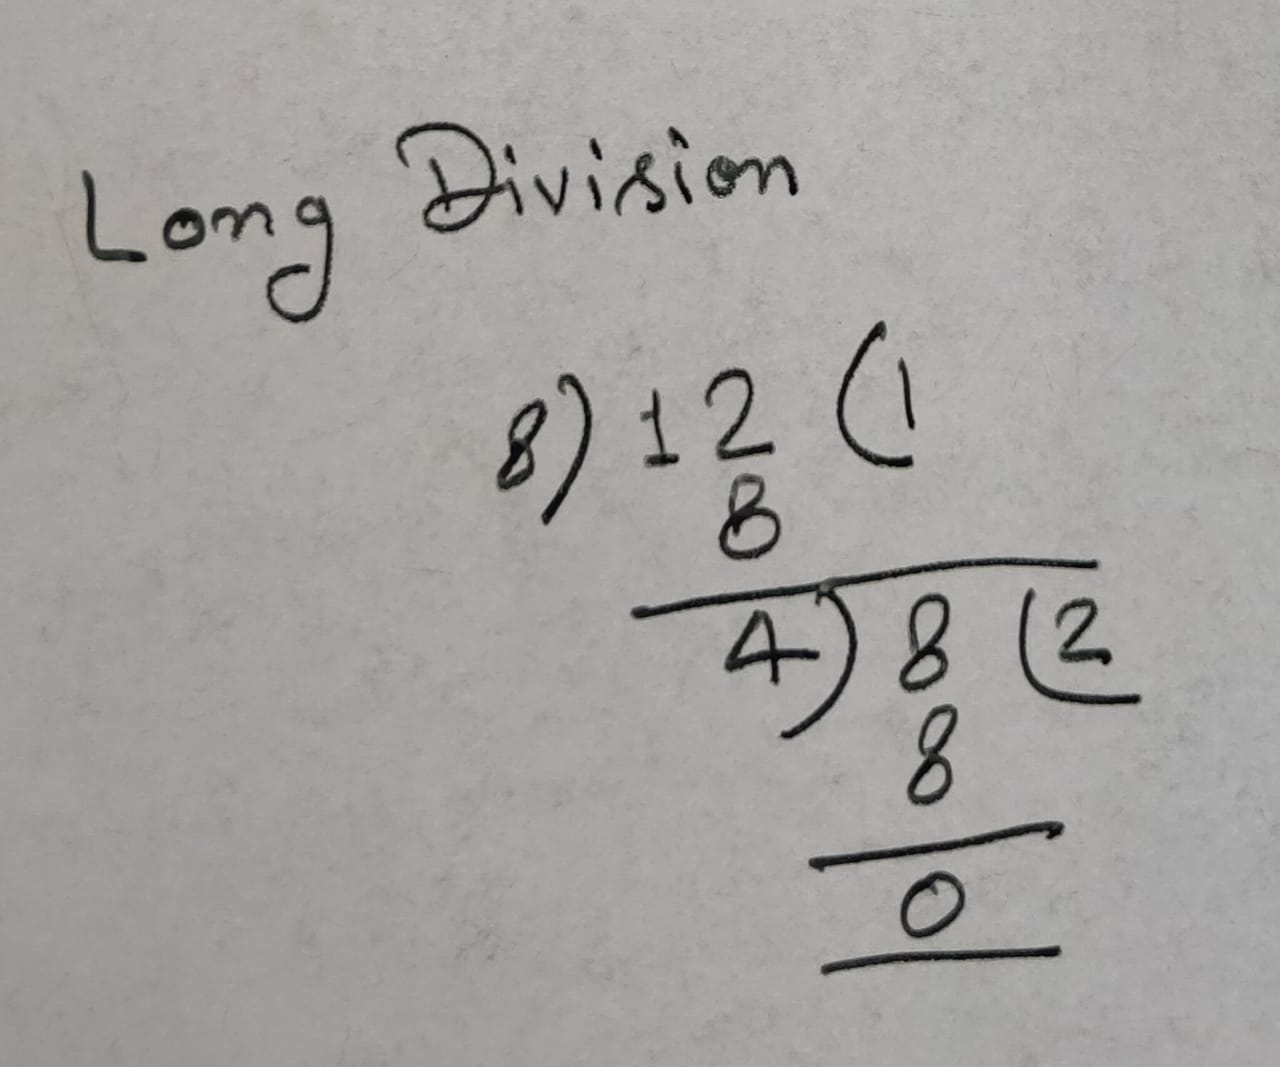 HCF of 8 And 12 By Long Division Methods